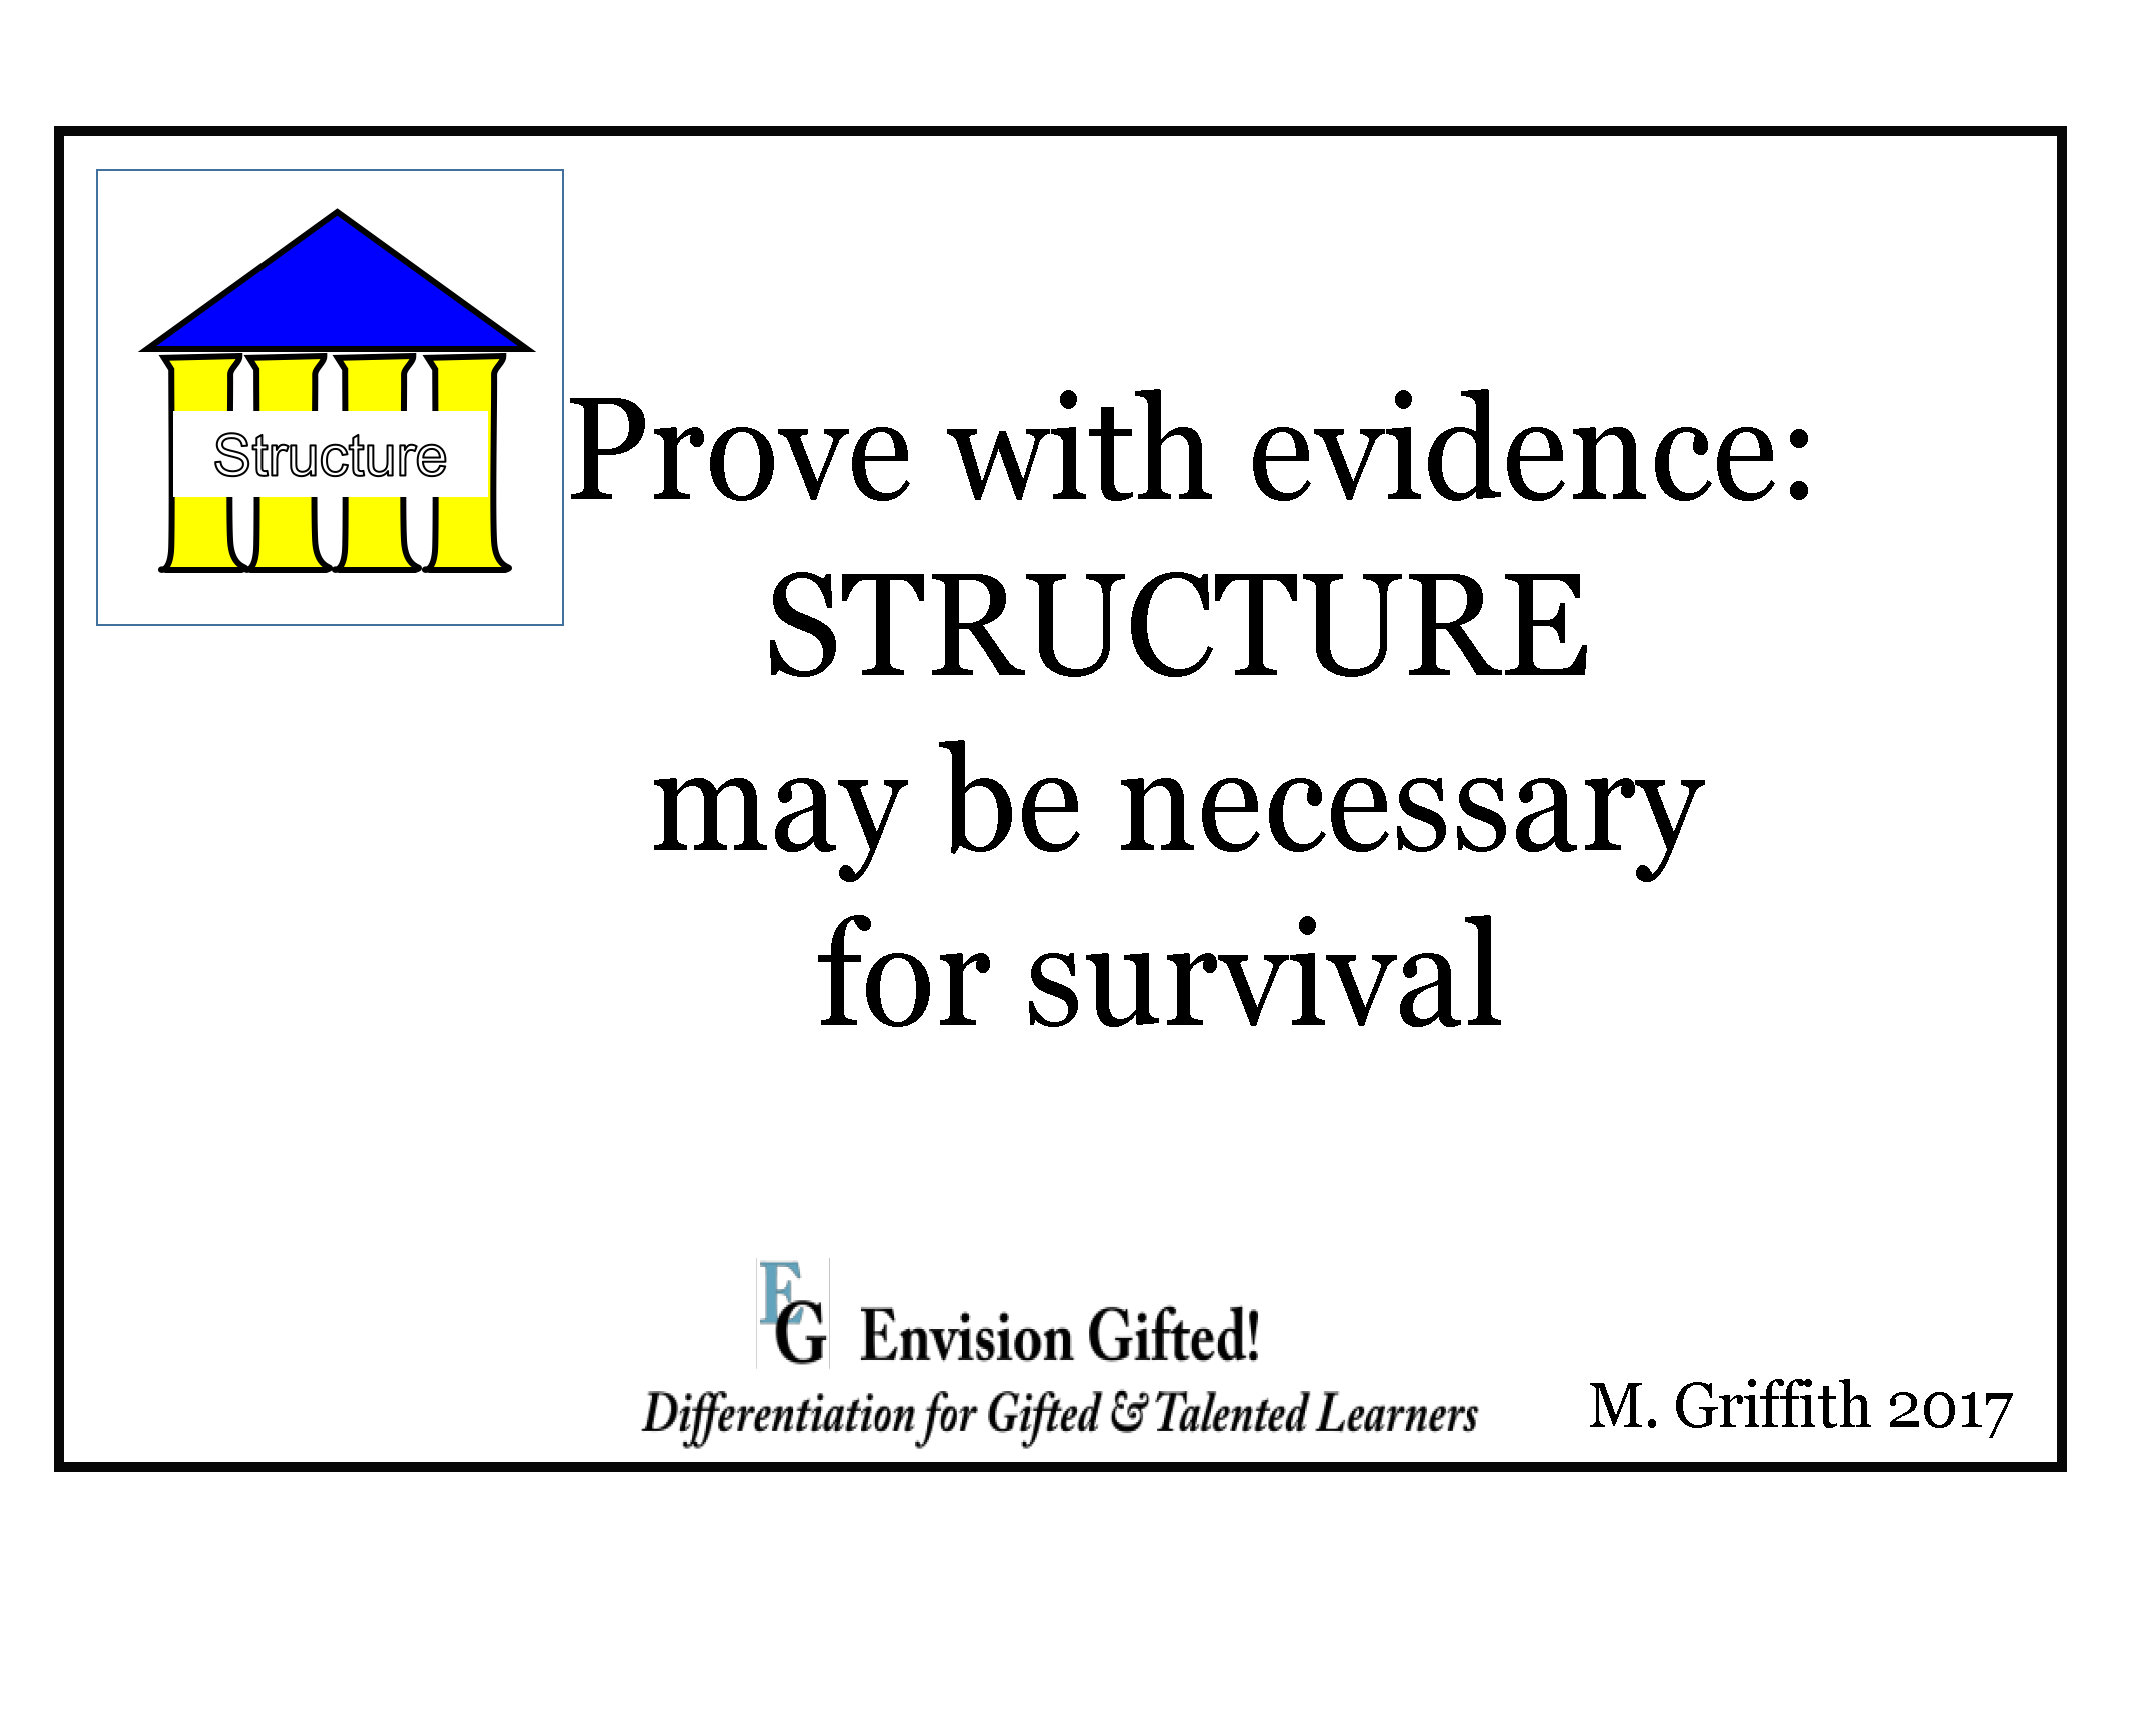 Envision Gifted. Universal Theme Structure As Necessary For Survival